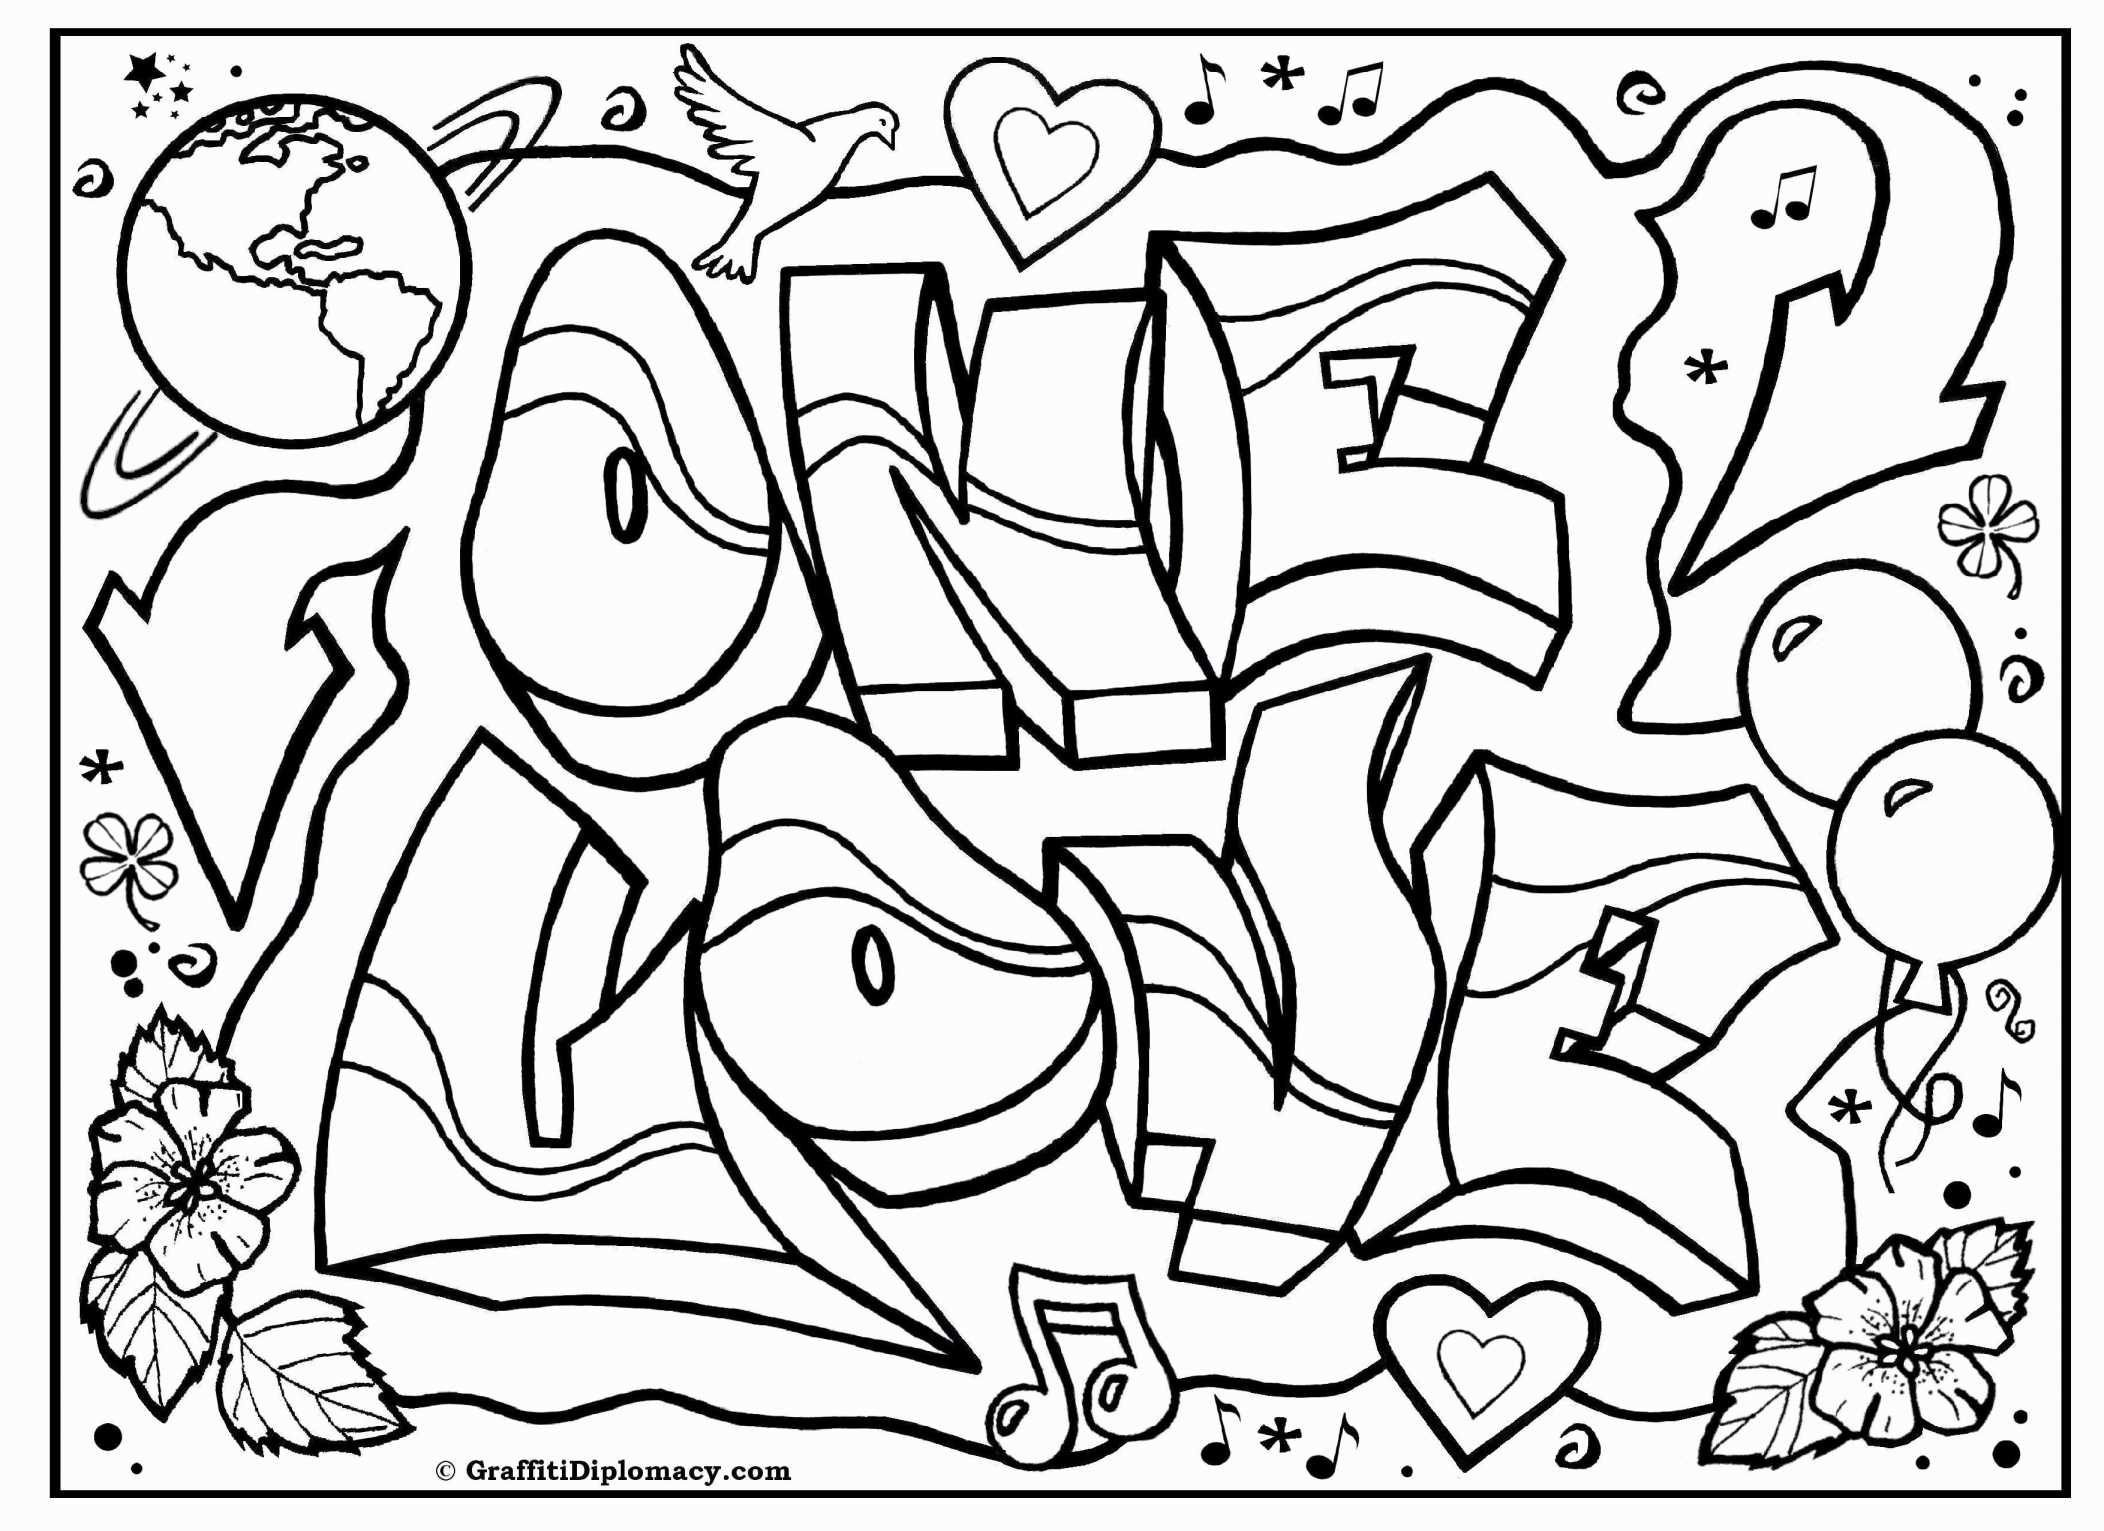 Graffiti Worksheet Answers  Briefencounters Along With Graffiti Worksheet Answers